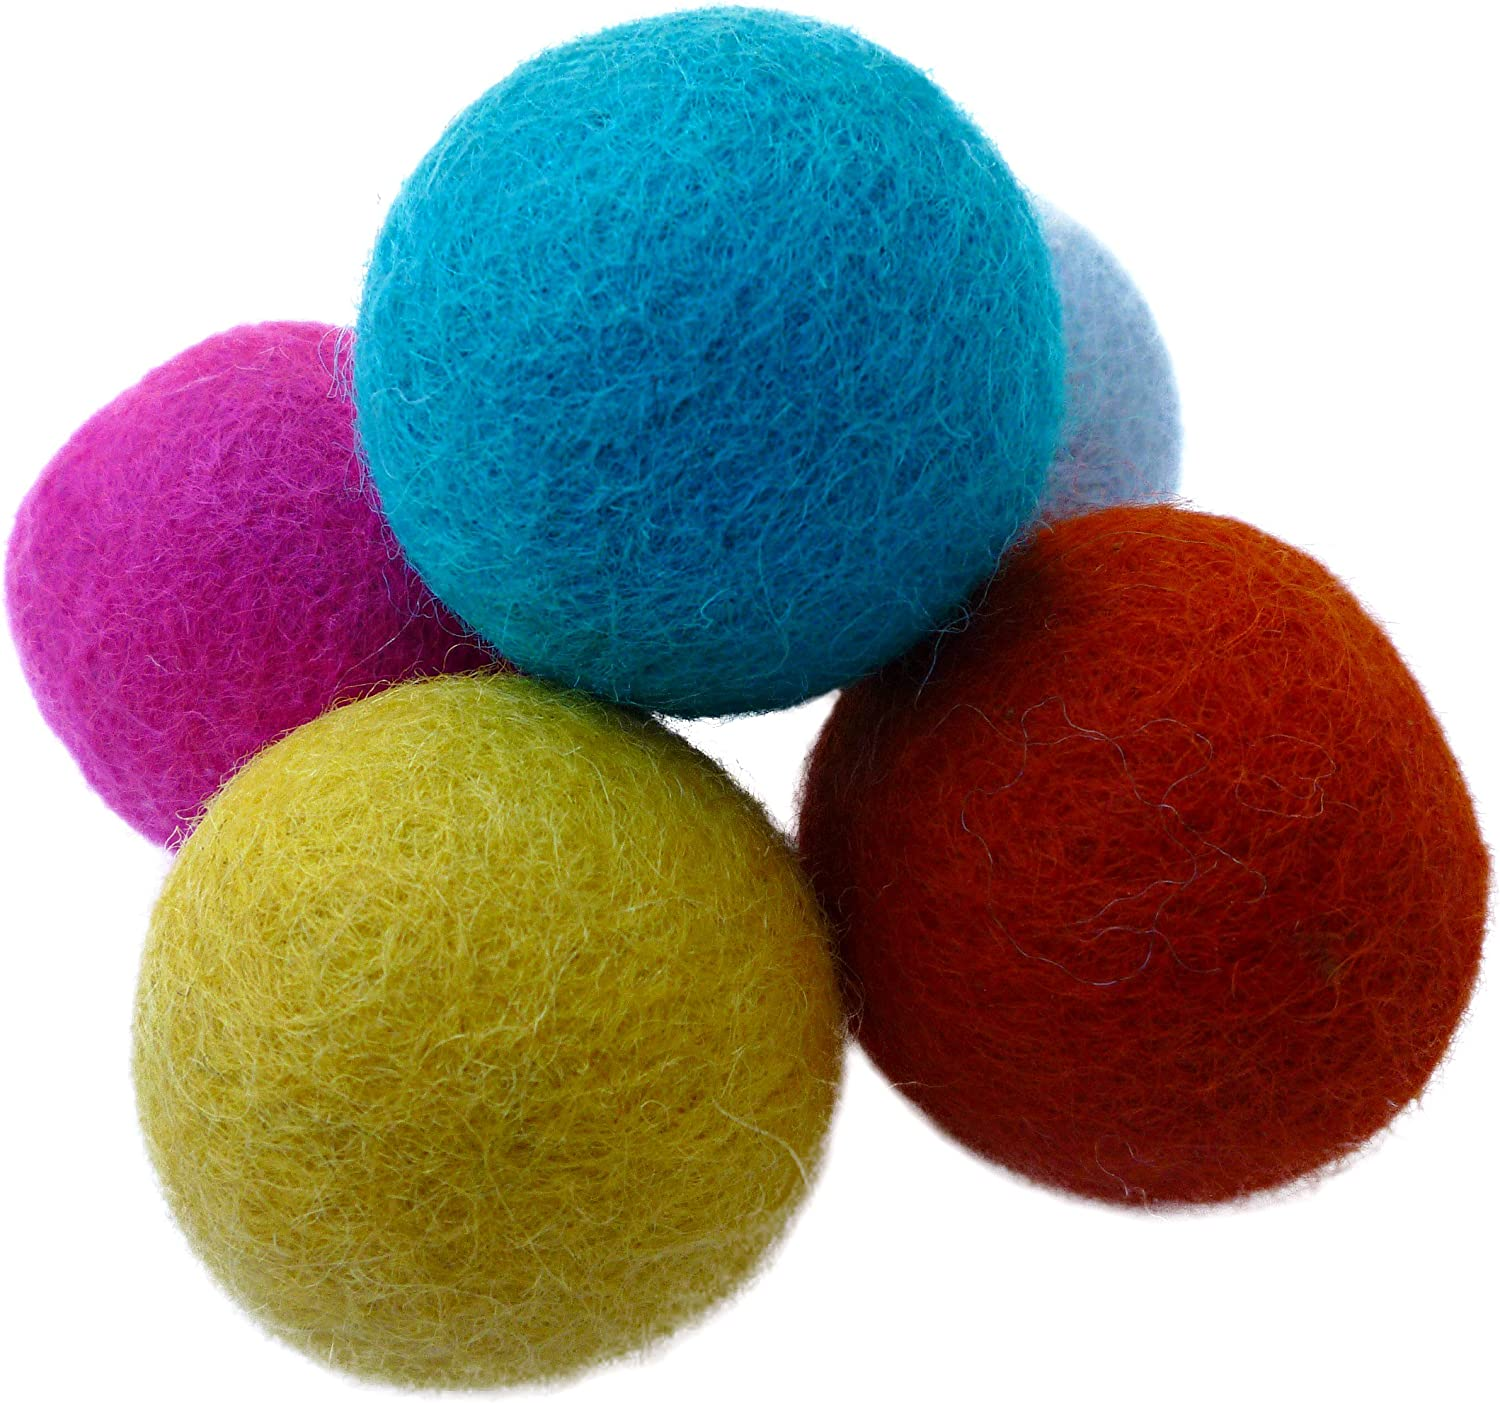 Fixed price for sale lowest price Earthtone Solutions Wool Felt Ball Toys Fu Cats and for Kittens